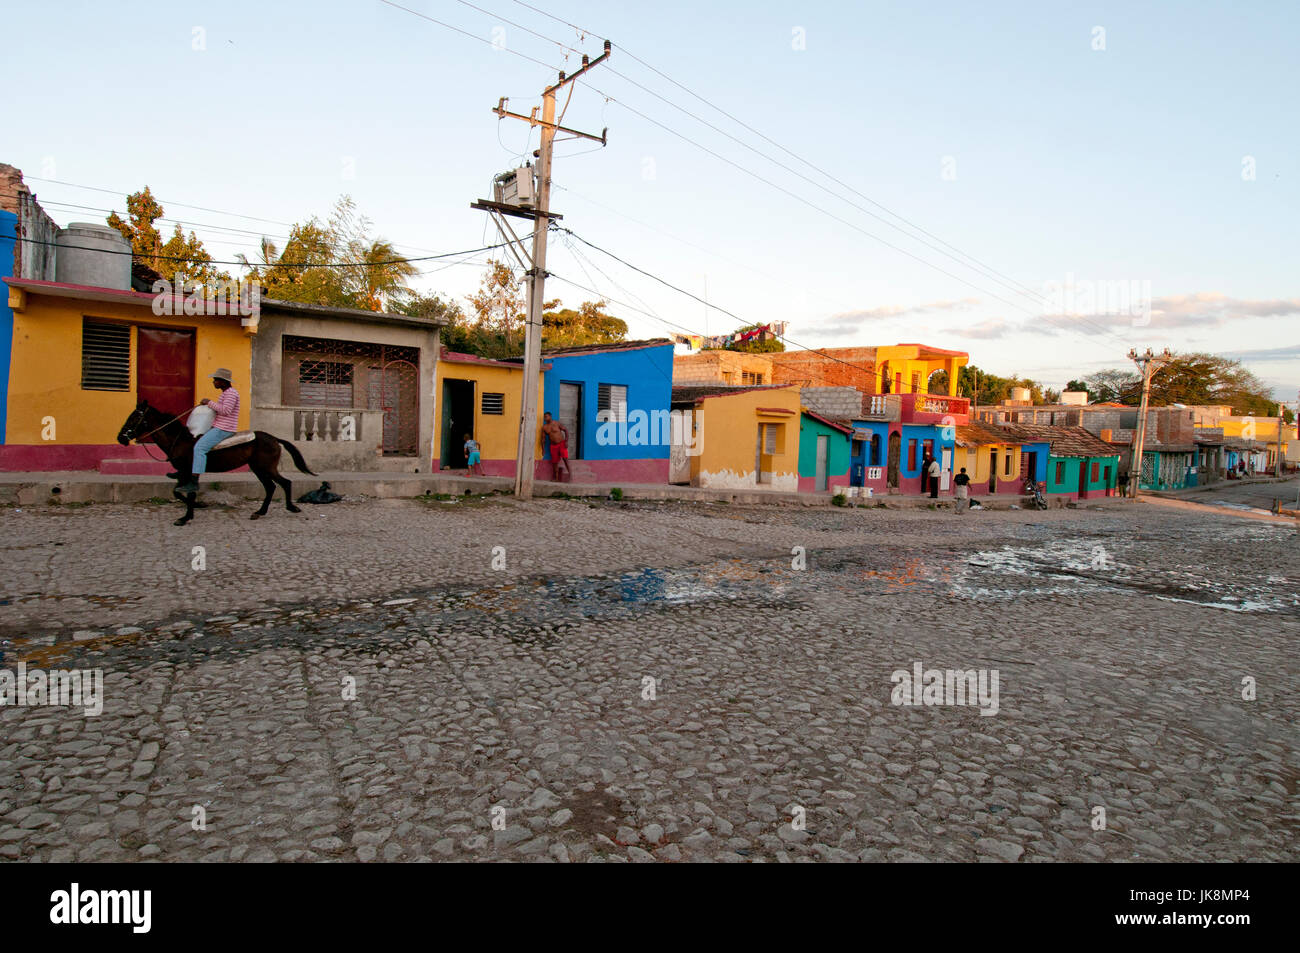 Cobblestone side street in Trinidad Cuba - Stock Image